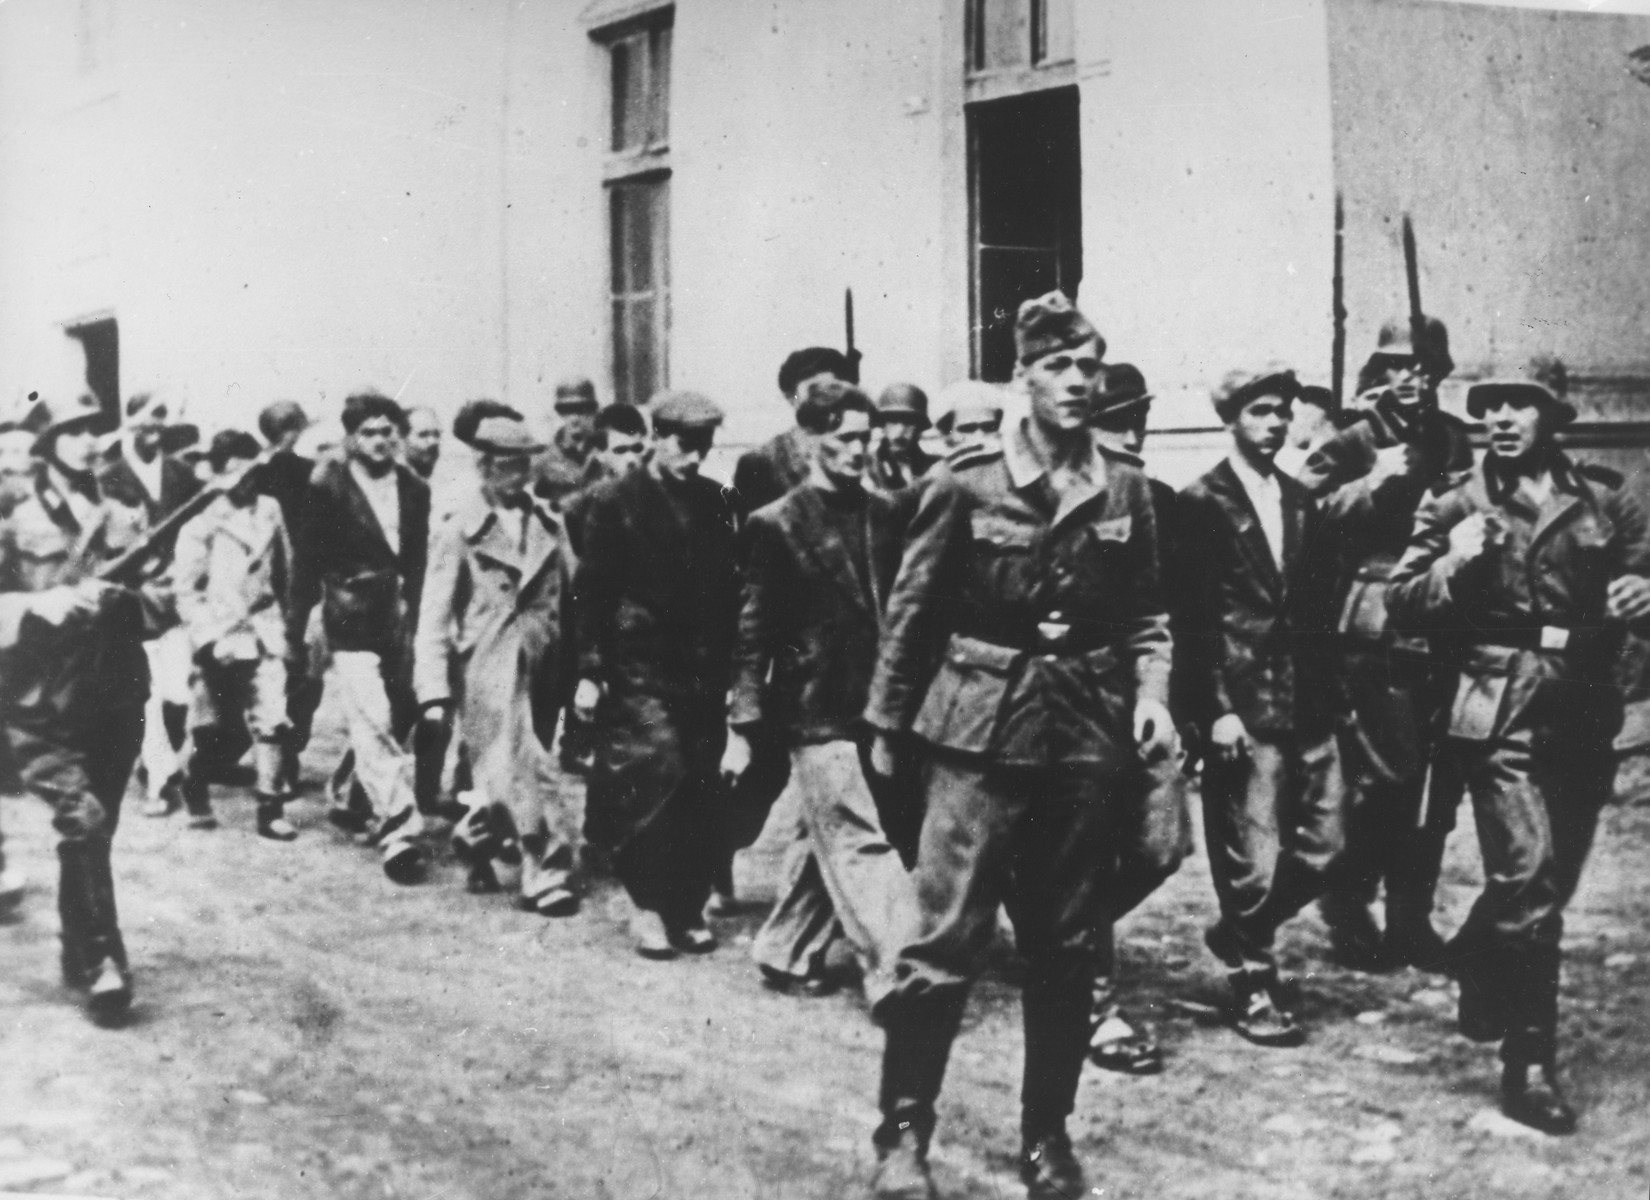 Germans escort people from Kragvjevac and its surrounding area to be executed.